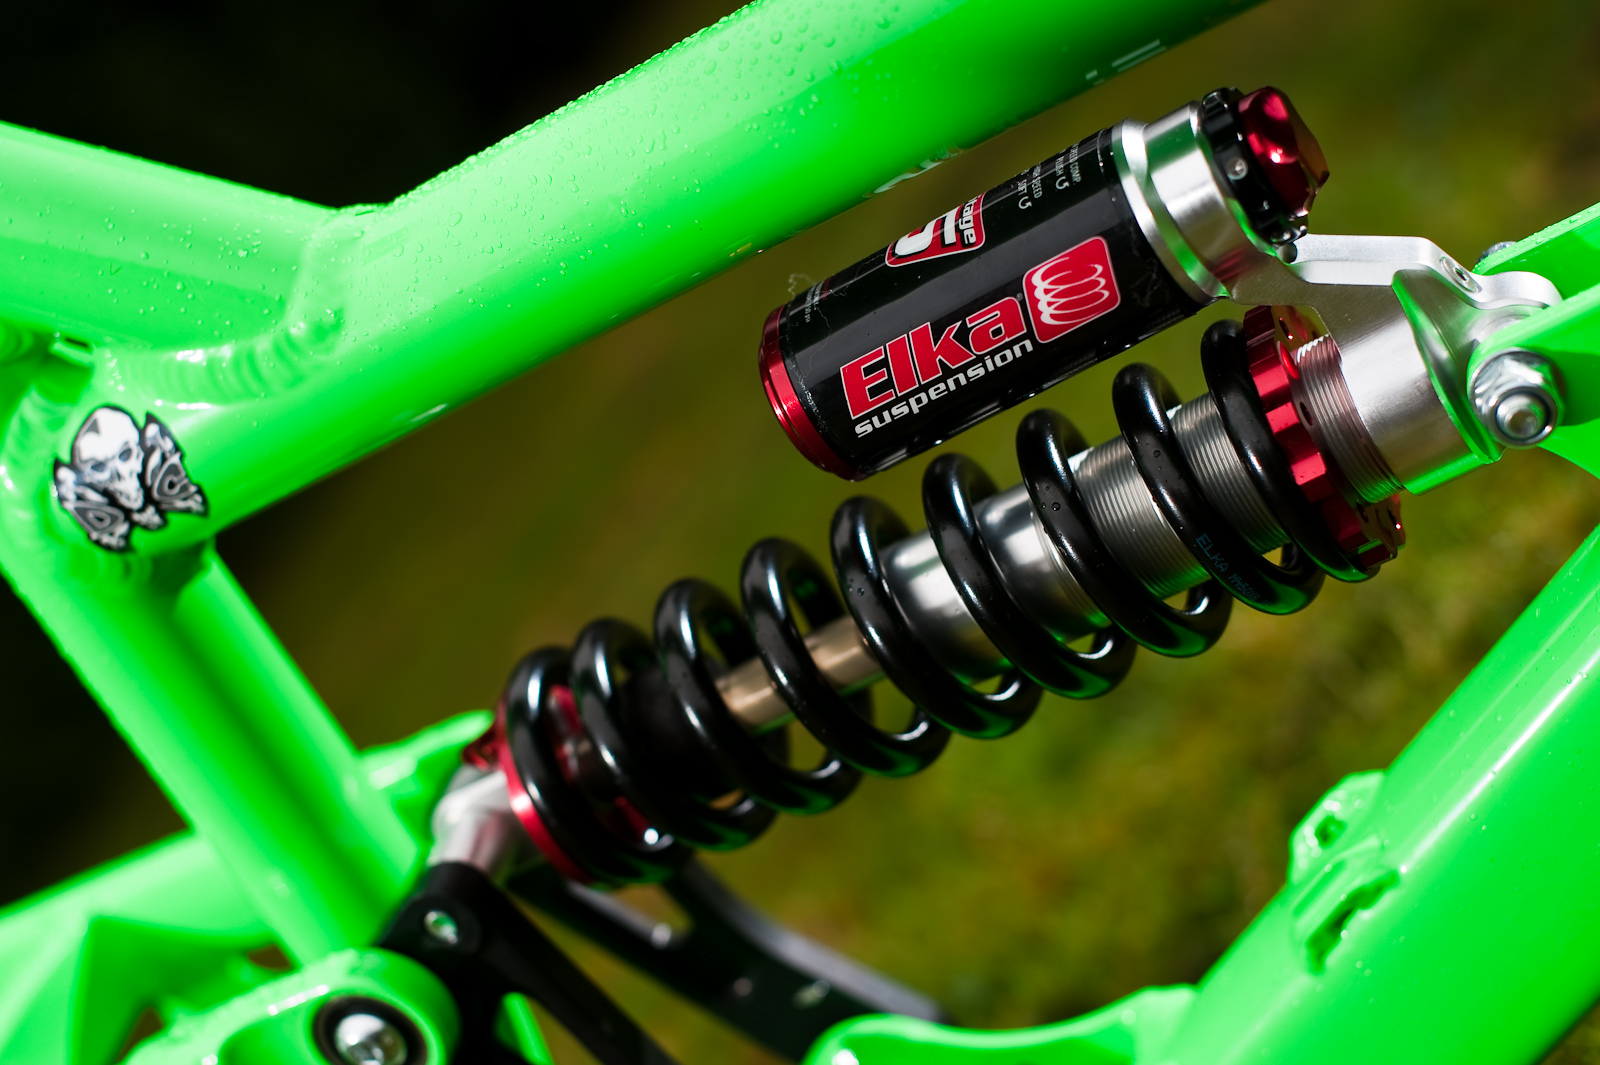 Elka stage 5 rear shock included on the new Cove STD, with High/Low speed compression and rebound adjustments.